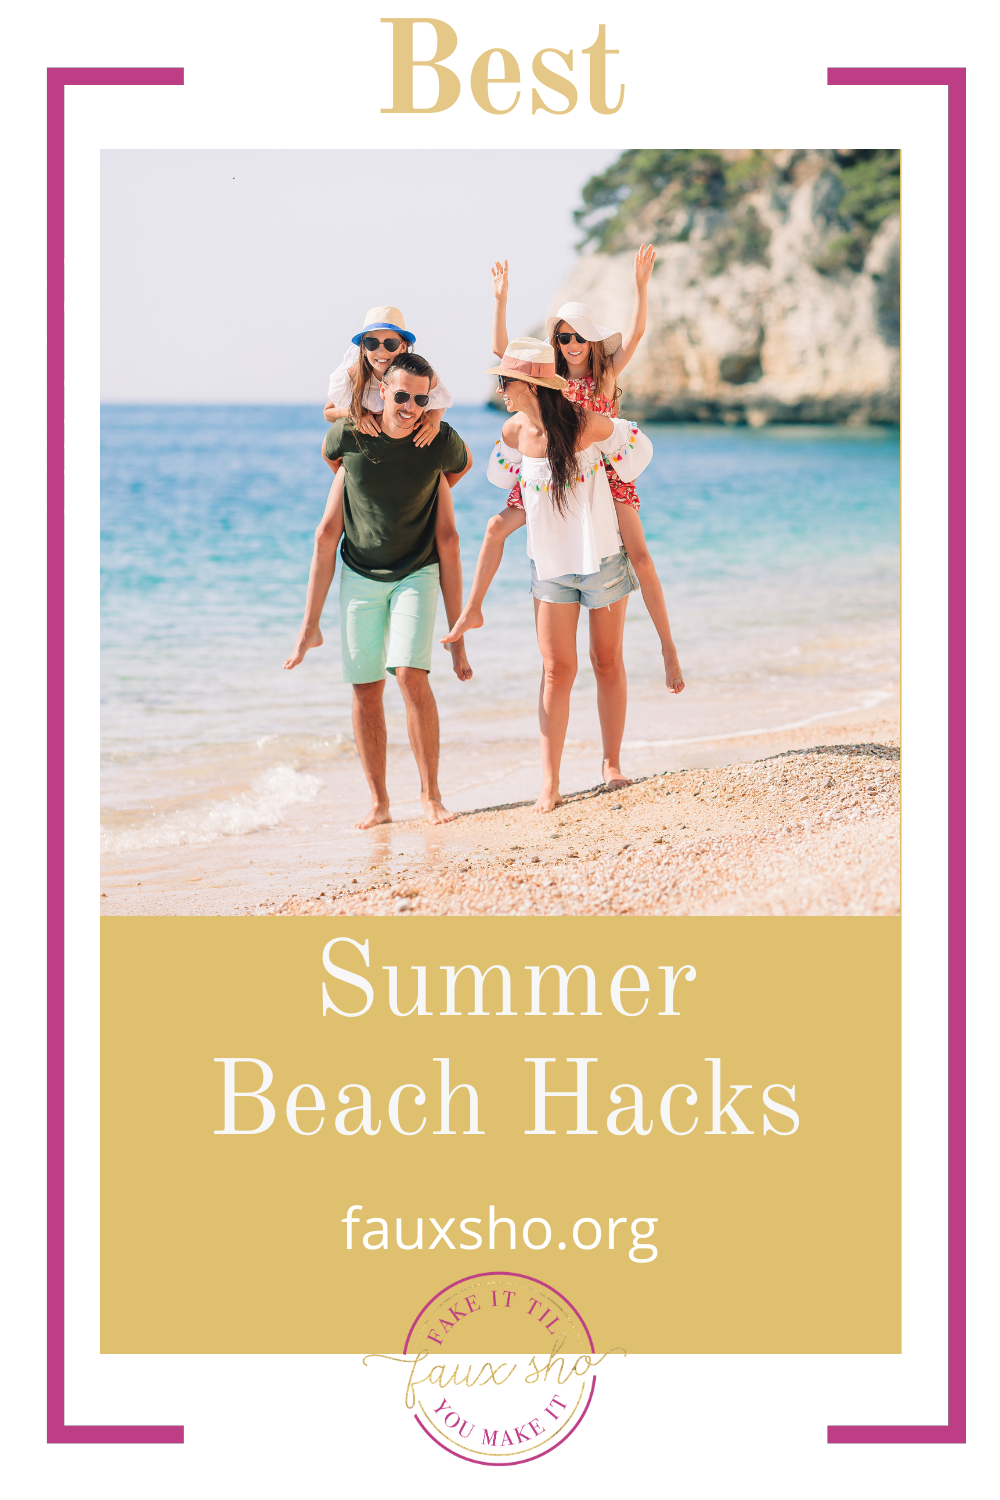 Fauxsho.org can help you simplify your life with the best life hacks around. Find ways to fake it 'til you make it and enjoy the rest. These summer beach hacks will make the whole family happy.